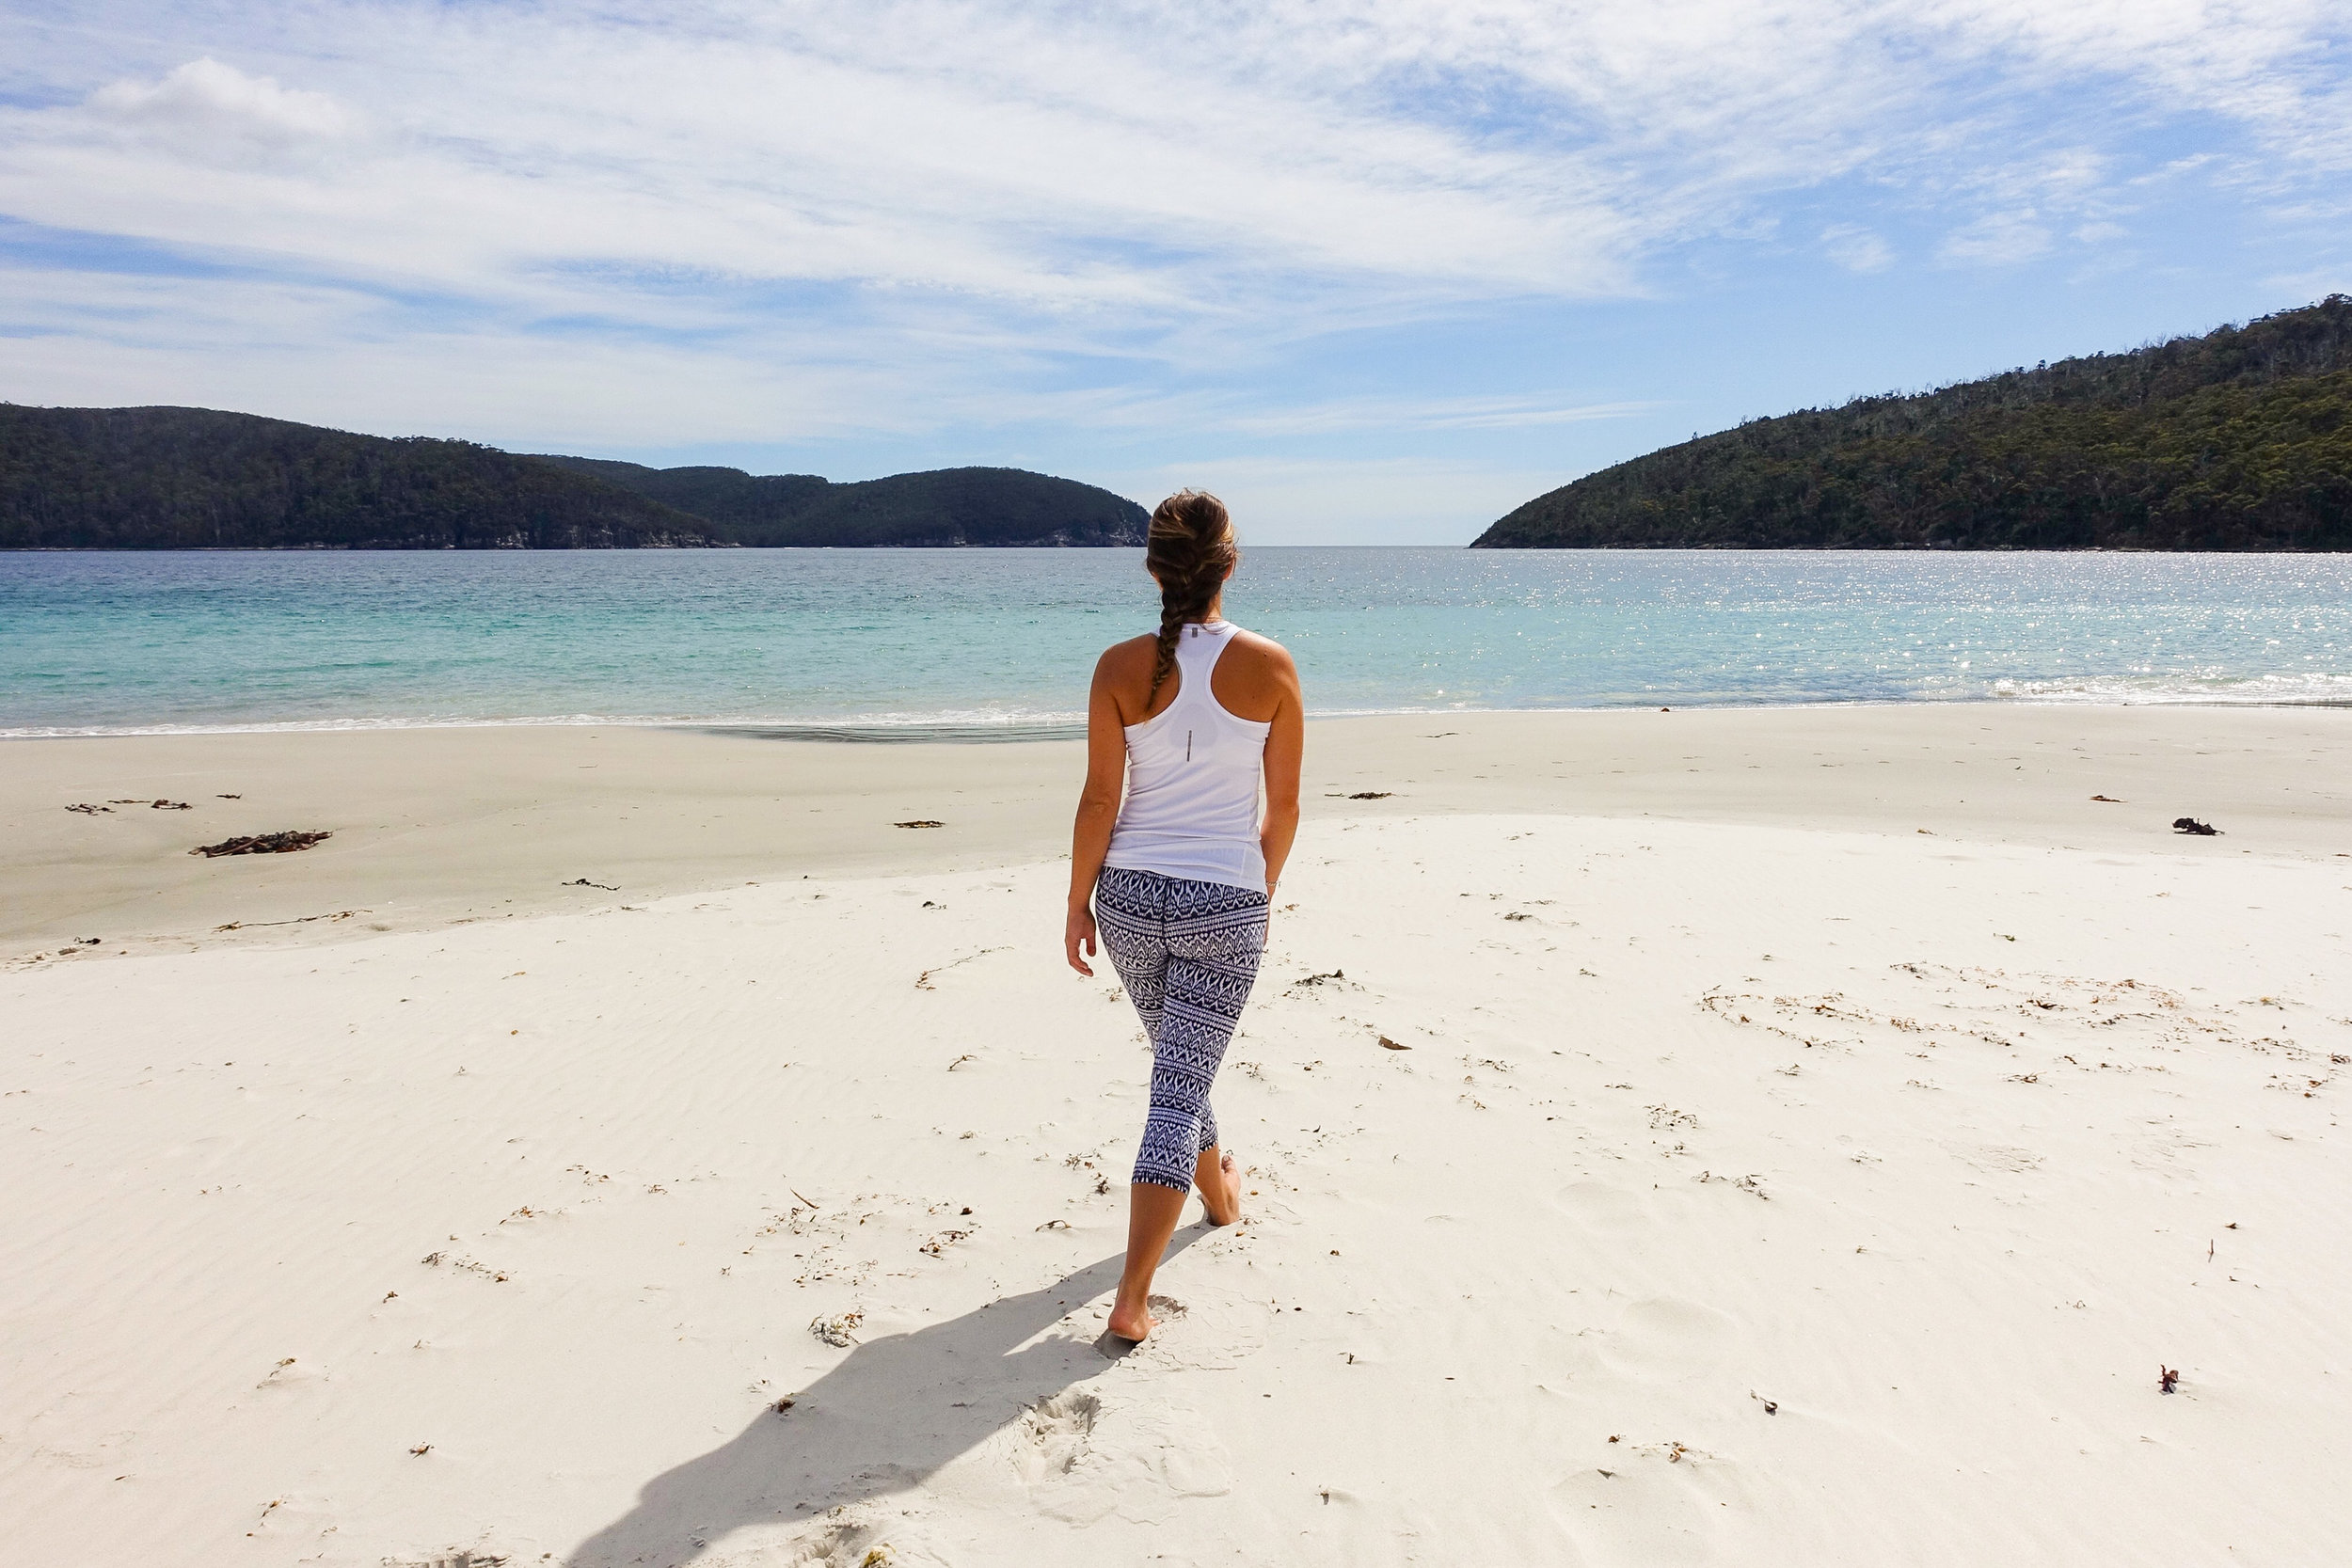 4.)Fortescue Bay - Located further south in the Tasman National Park, Fortescue Bay is a sheltered, white sand beach. Camp right next to the beach and if you have time we recommend the walk to Cape Hauy.